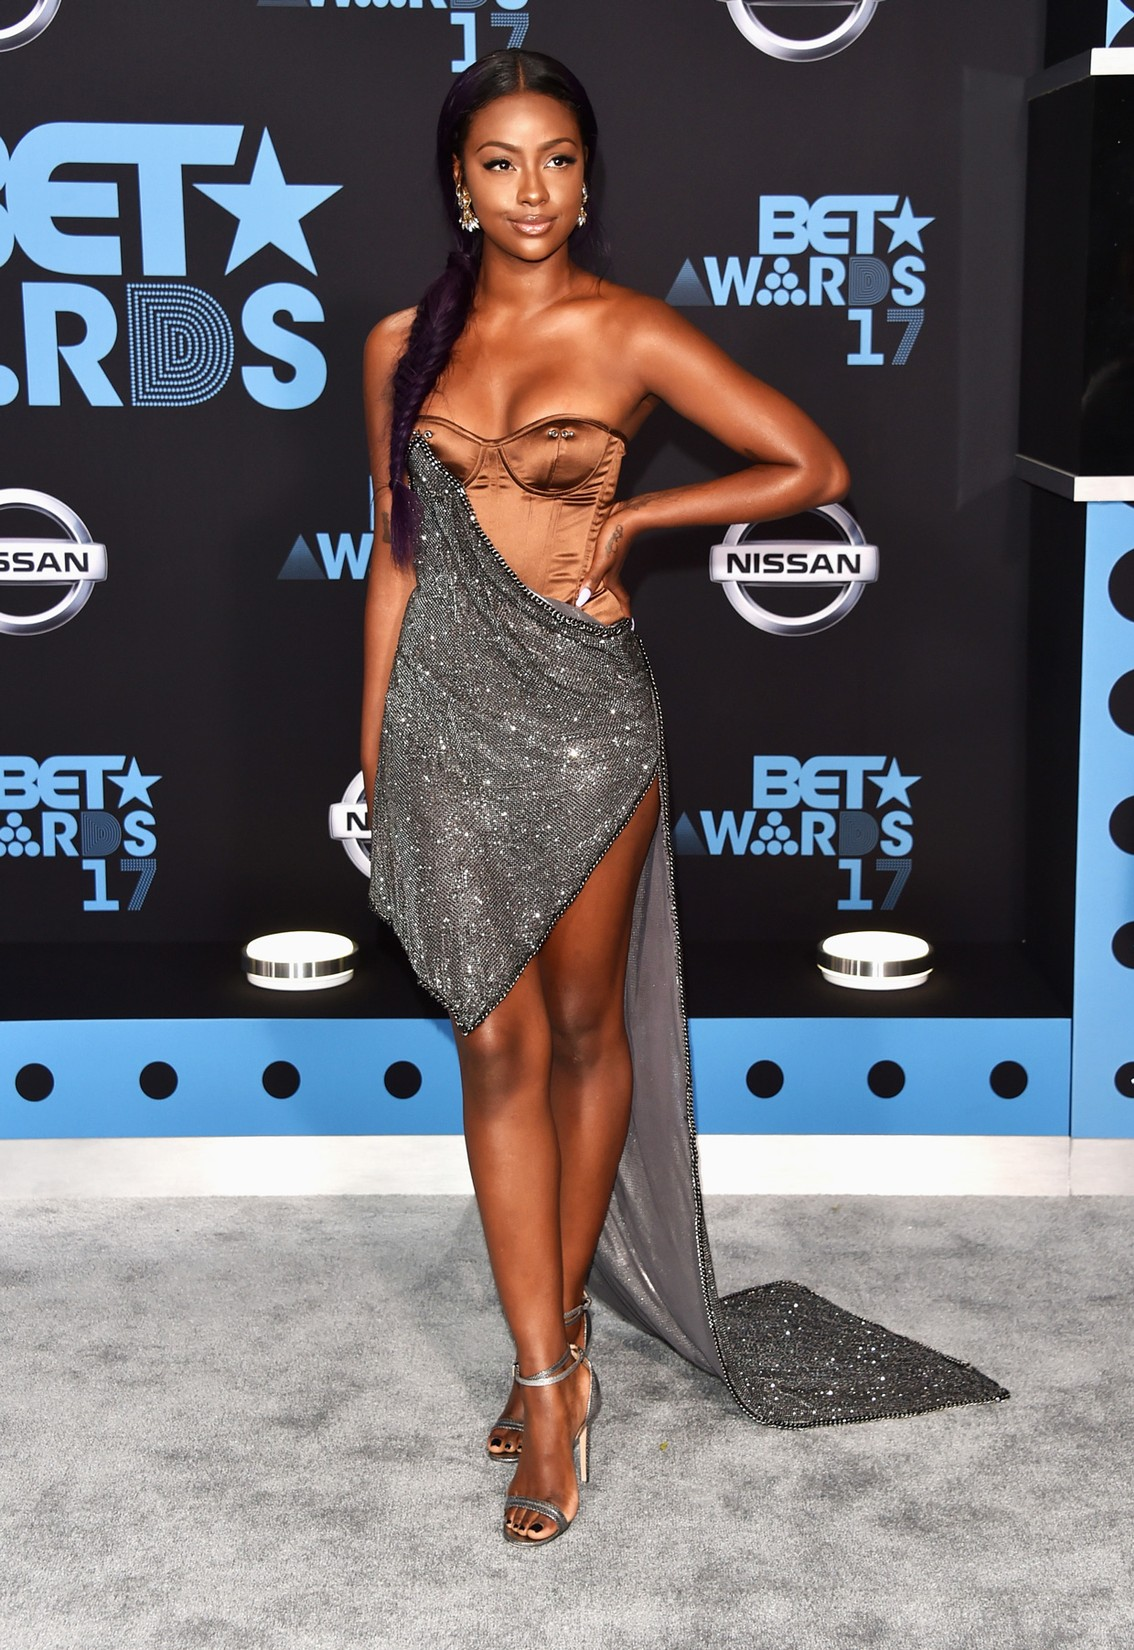 Justine Skye at the 2017 BET Awards at Microsoft Square on June 25, 2017 in Los Angeles.